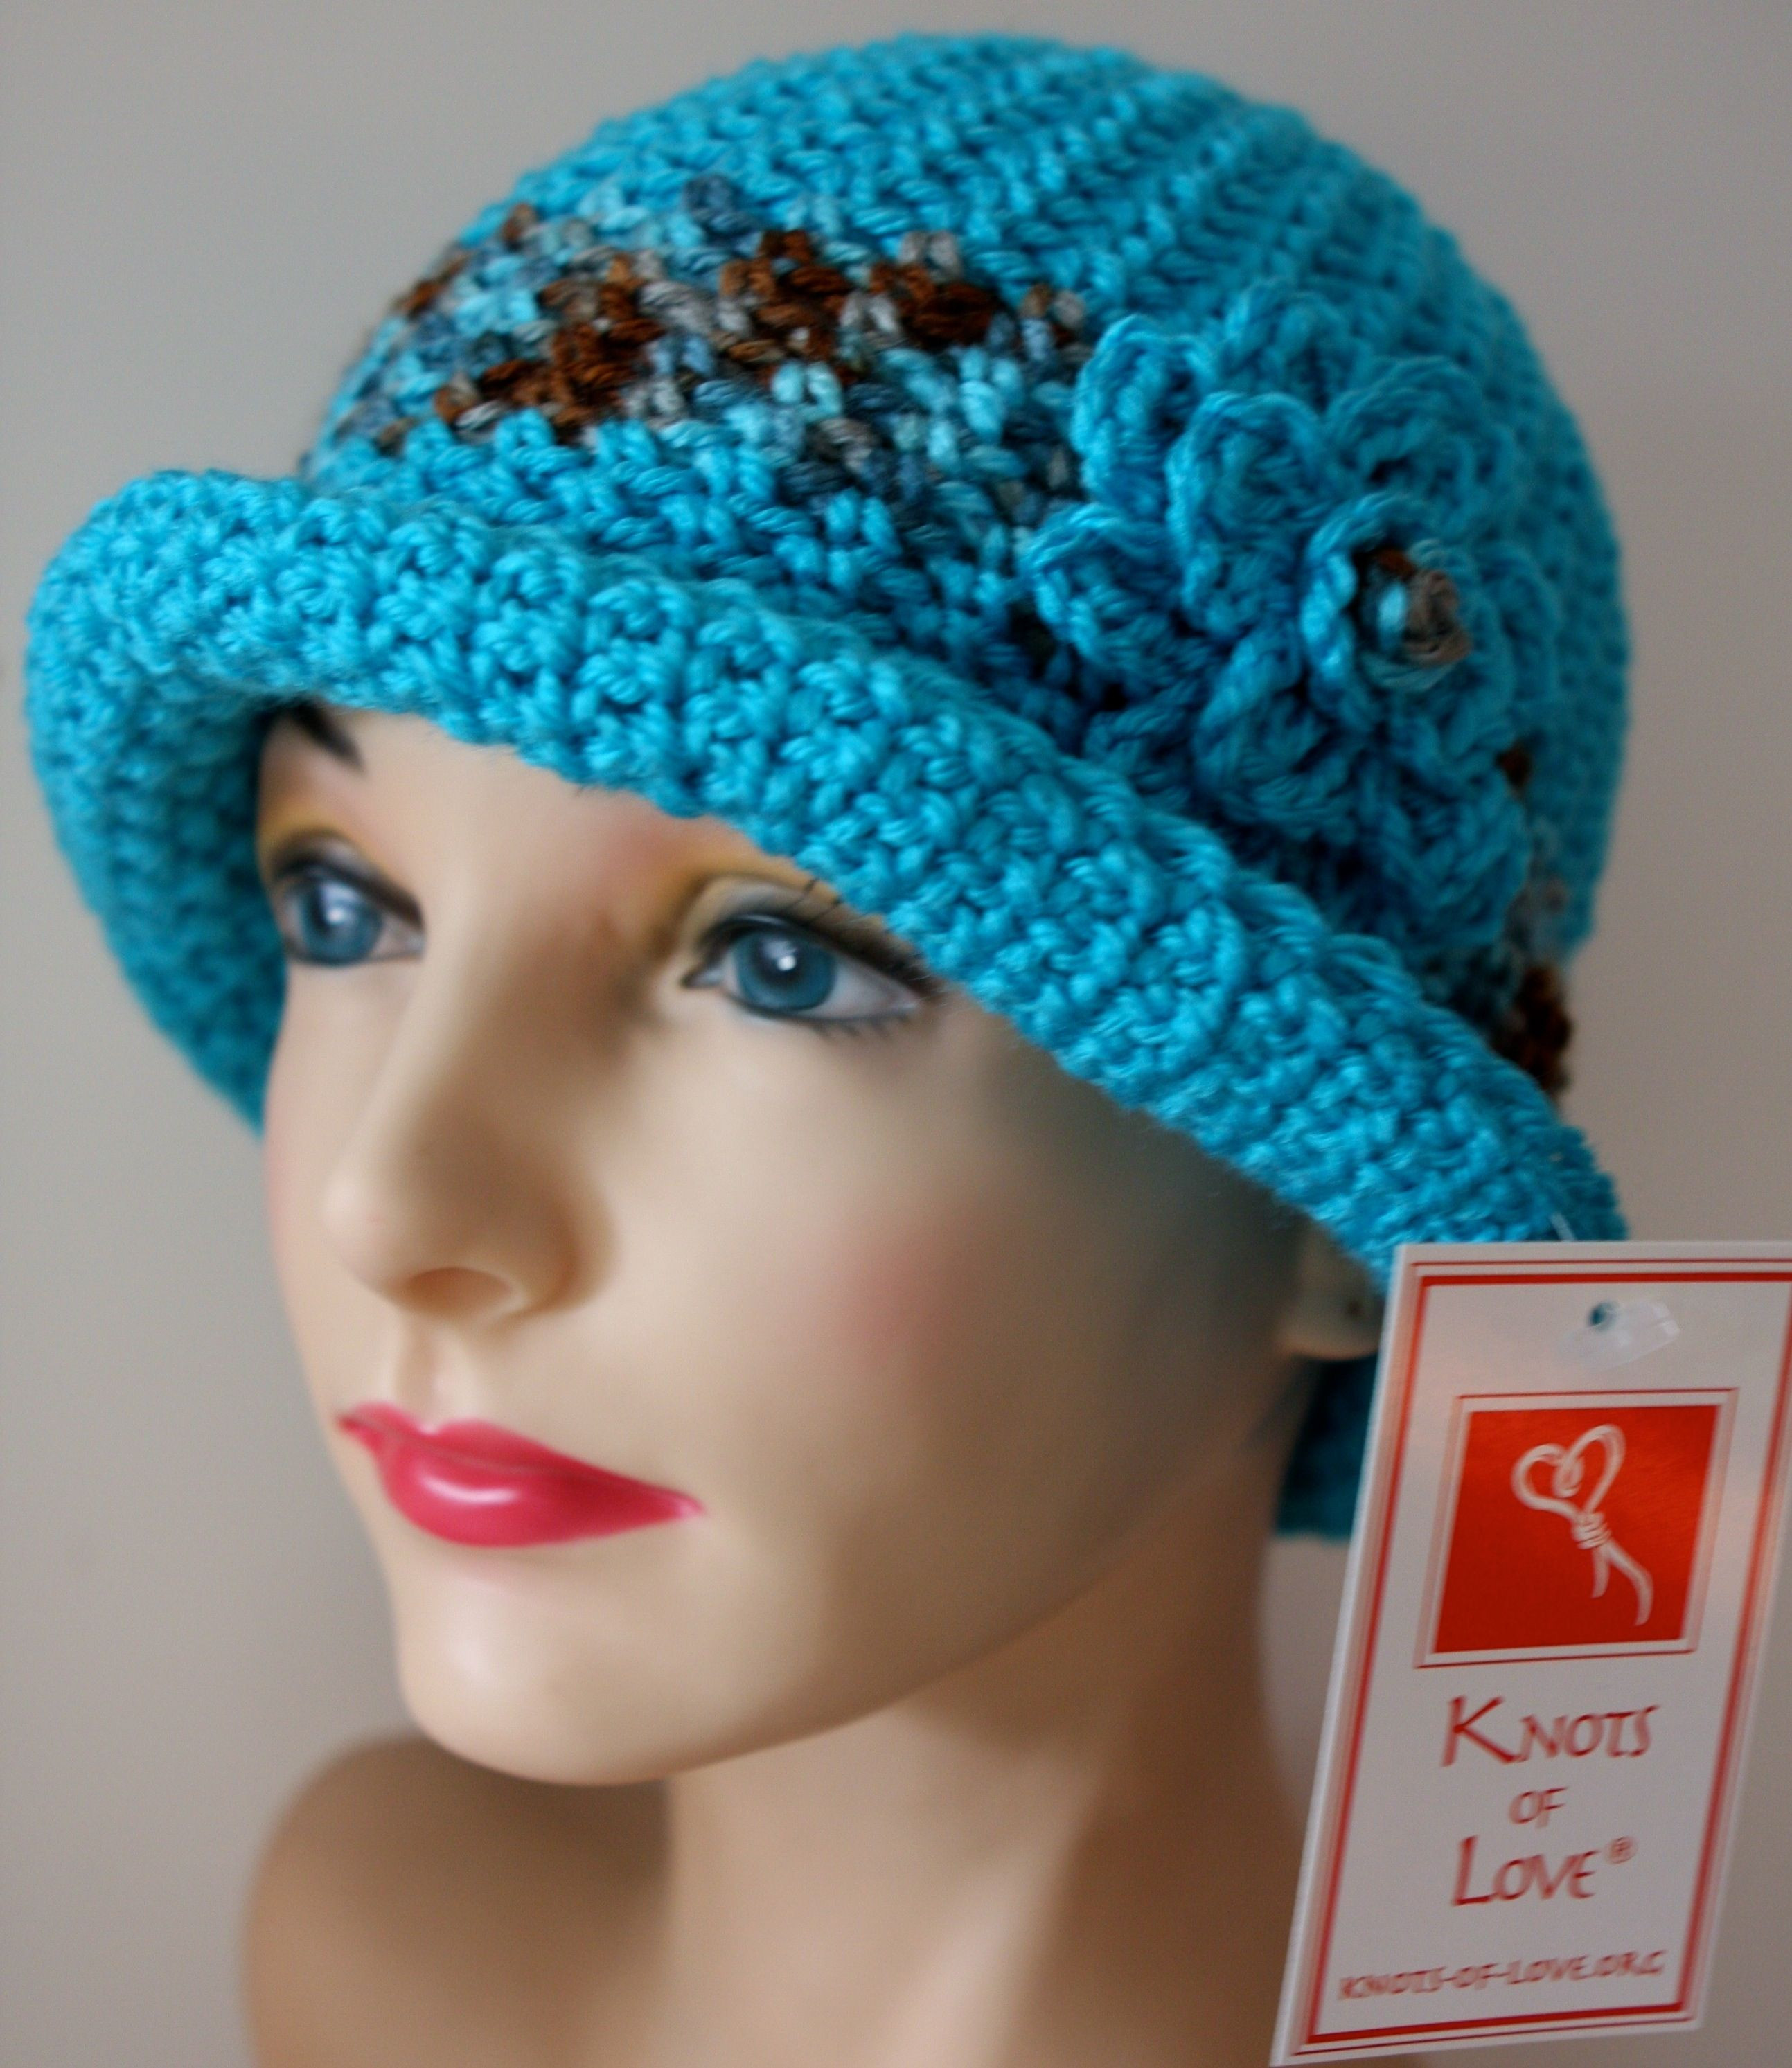 Knots of Love Volunteers who knit or crochet hats for